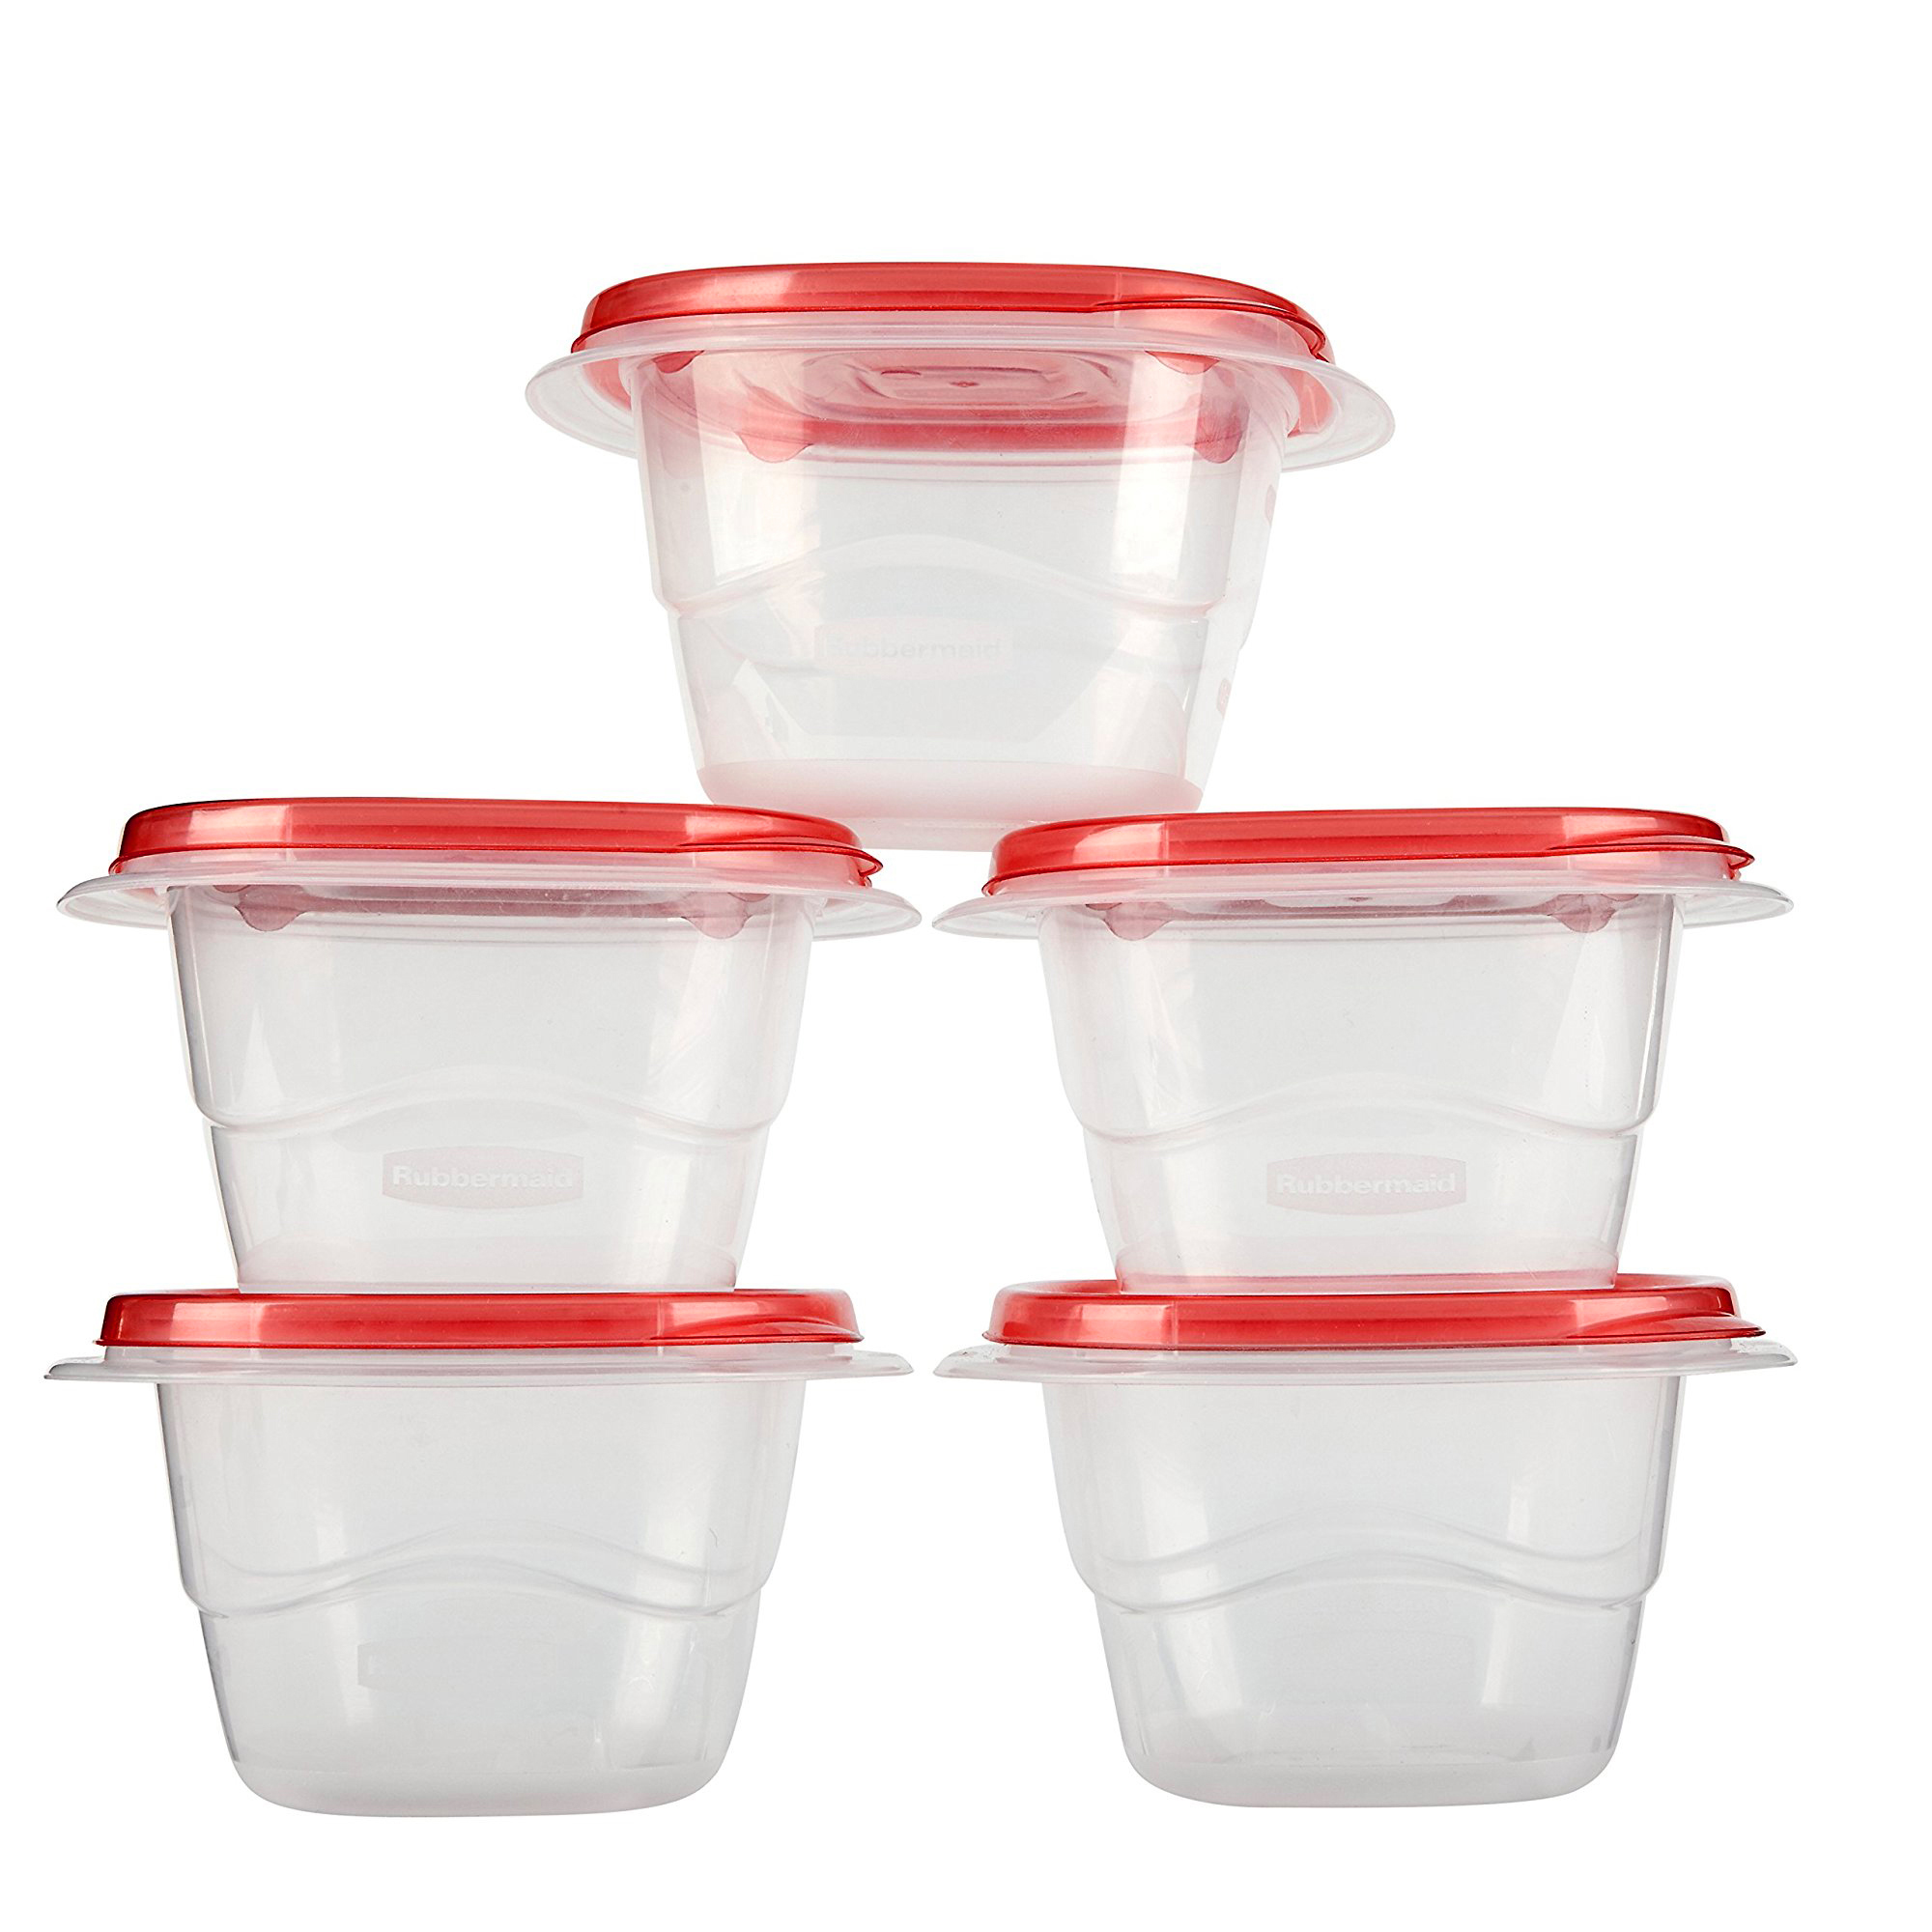 Rubbermaid TakeAlongs 17 oz Mini Deep Squares Containers + Lids, 5 count